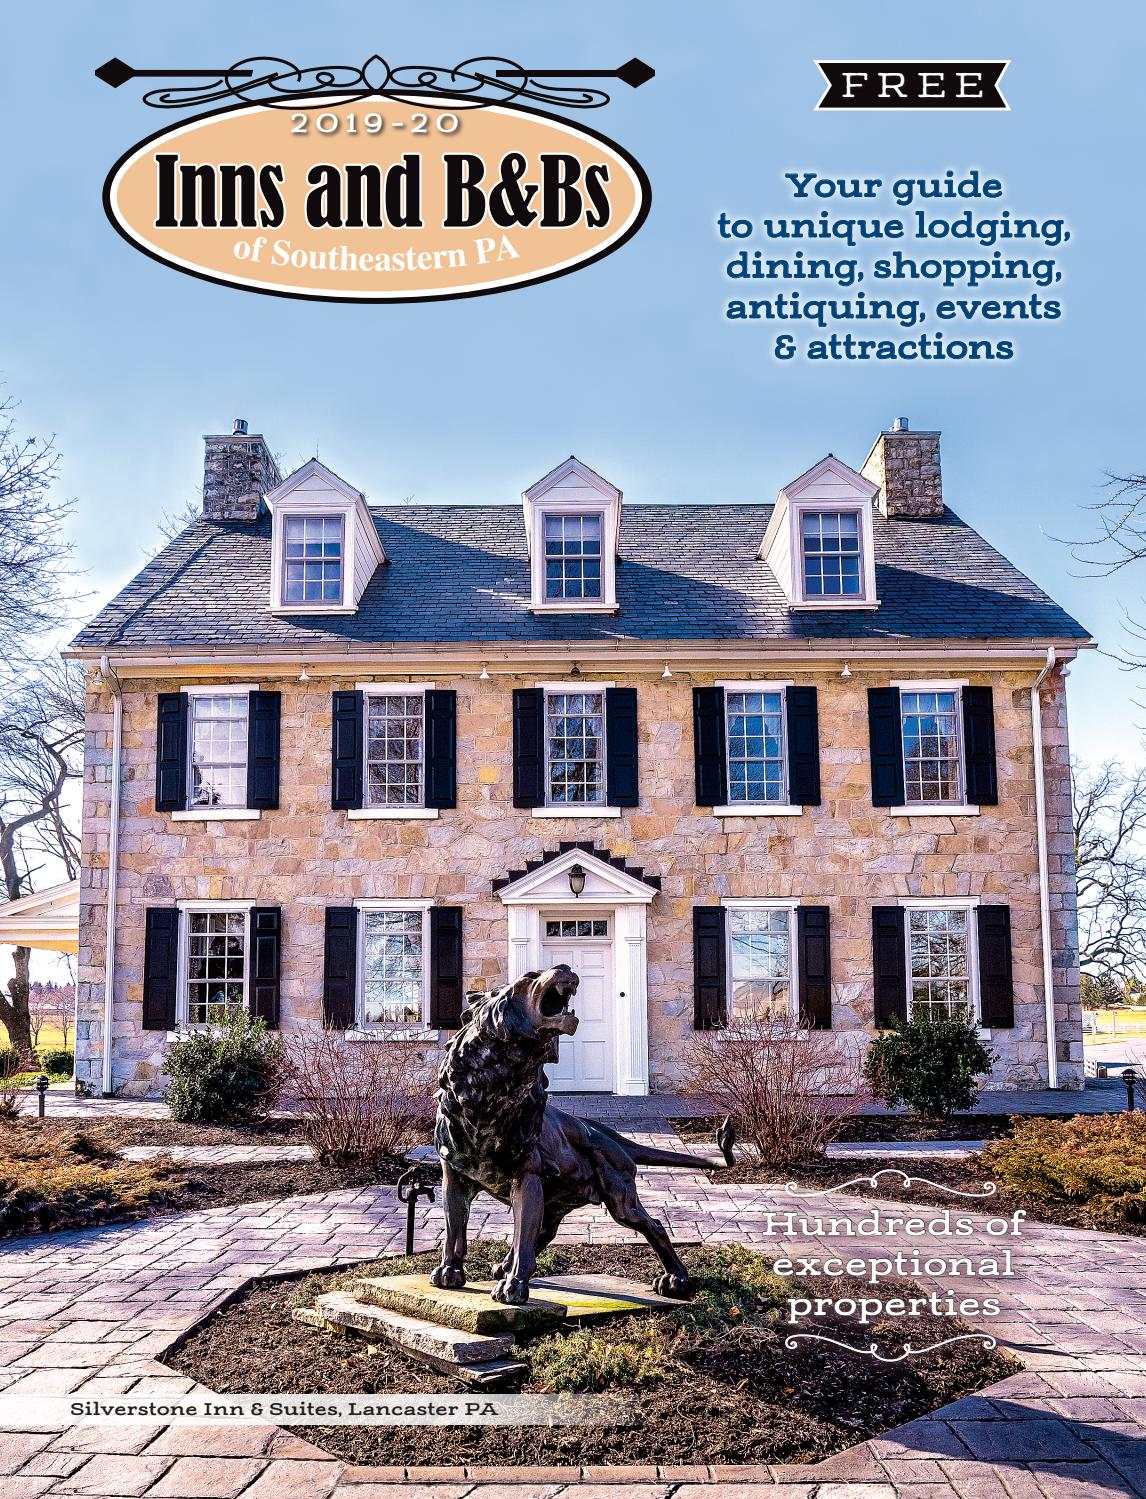 Inns and B&Bs of Southeastern PA 2019-20 by Engle Printing